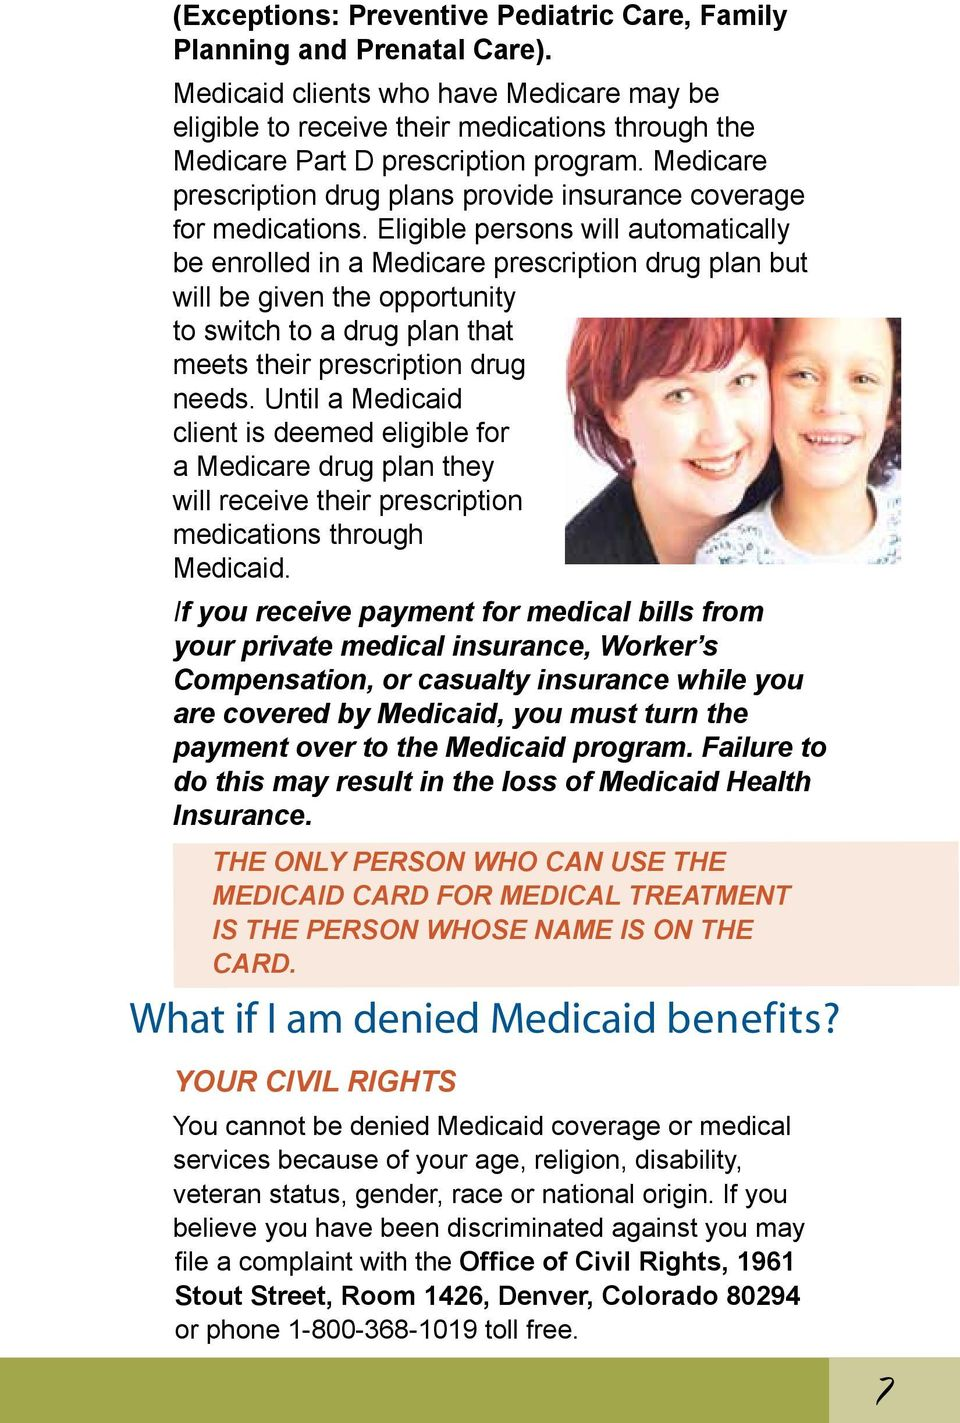 Medicare prescription drug plans provide insurance coverage for medications.